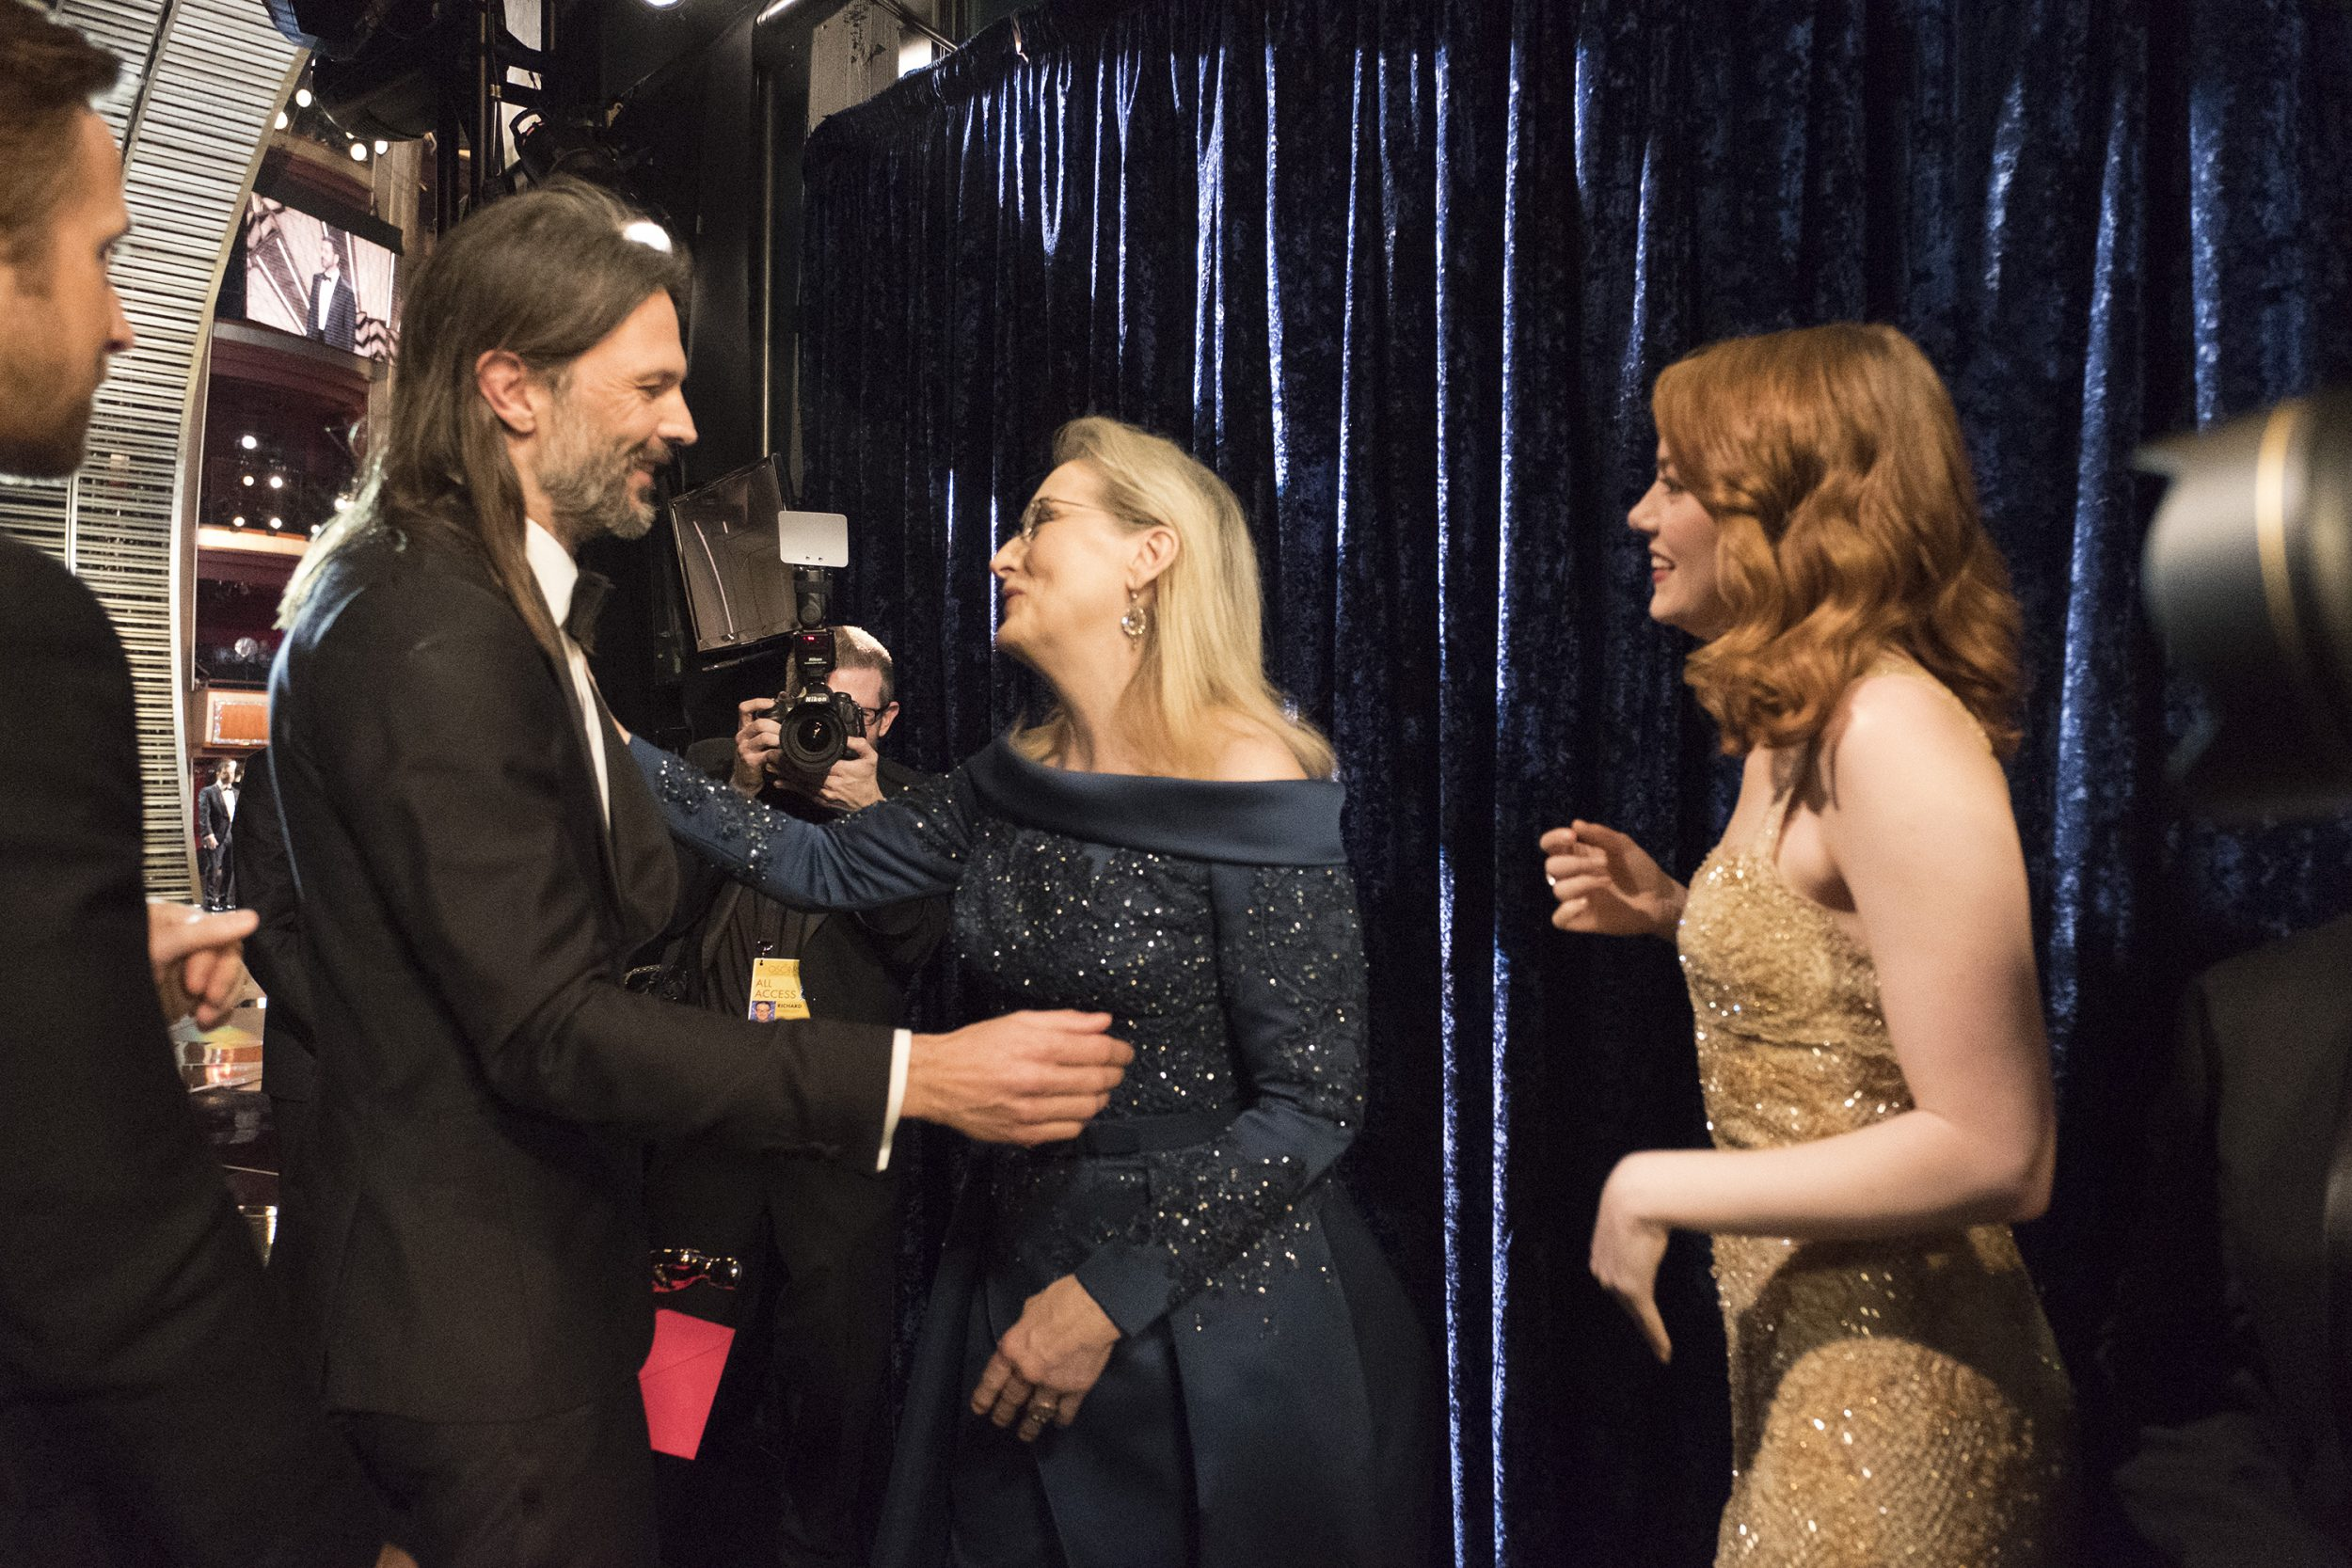 THE OSCARS(r) - The 89th Oscars(r)  broadcasts live on Oscar(r) SUNDAY, FEBRUARY 26, 2017, on the ABC Television Network. (ABC/Adam Rose) LINUS SANDGREN, MERYL STREEP, EMMA STONE